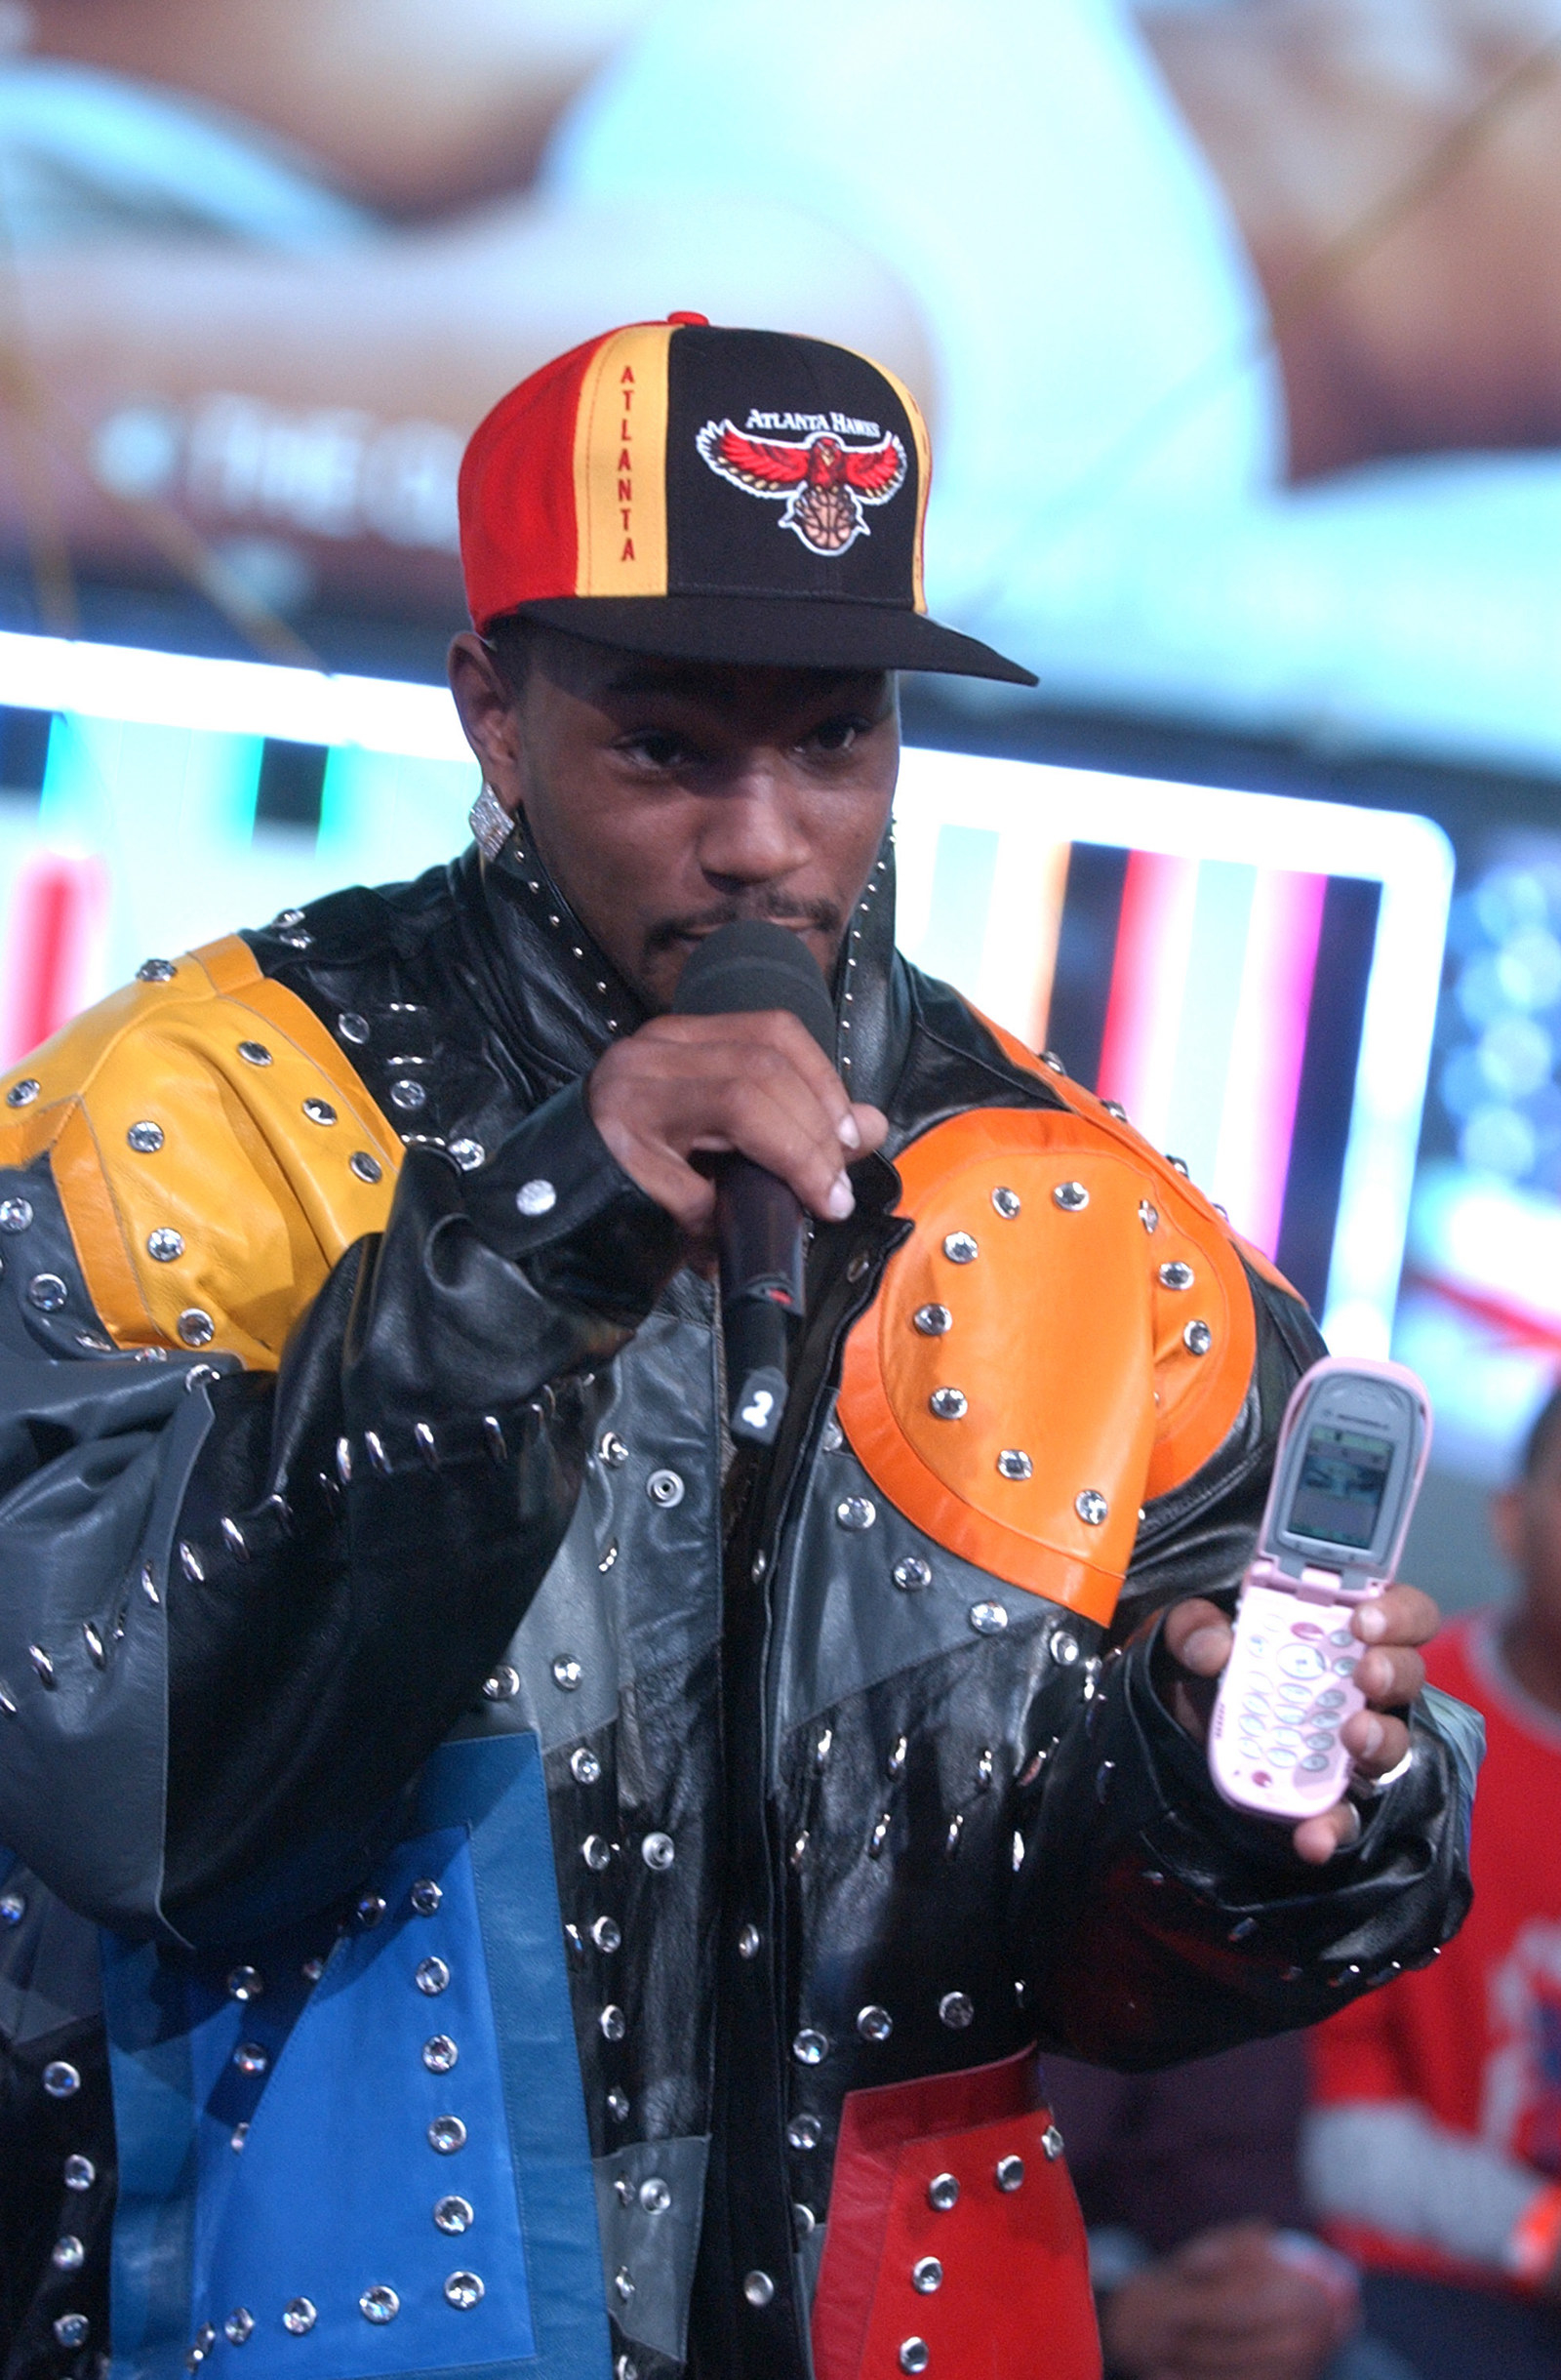 Also Cam'ron showing off his pink mobile device.